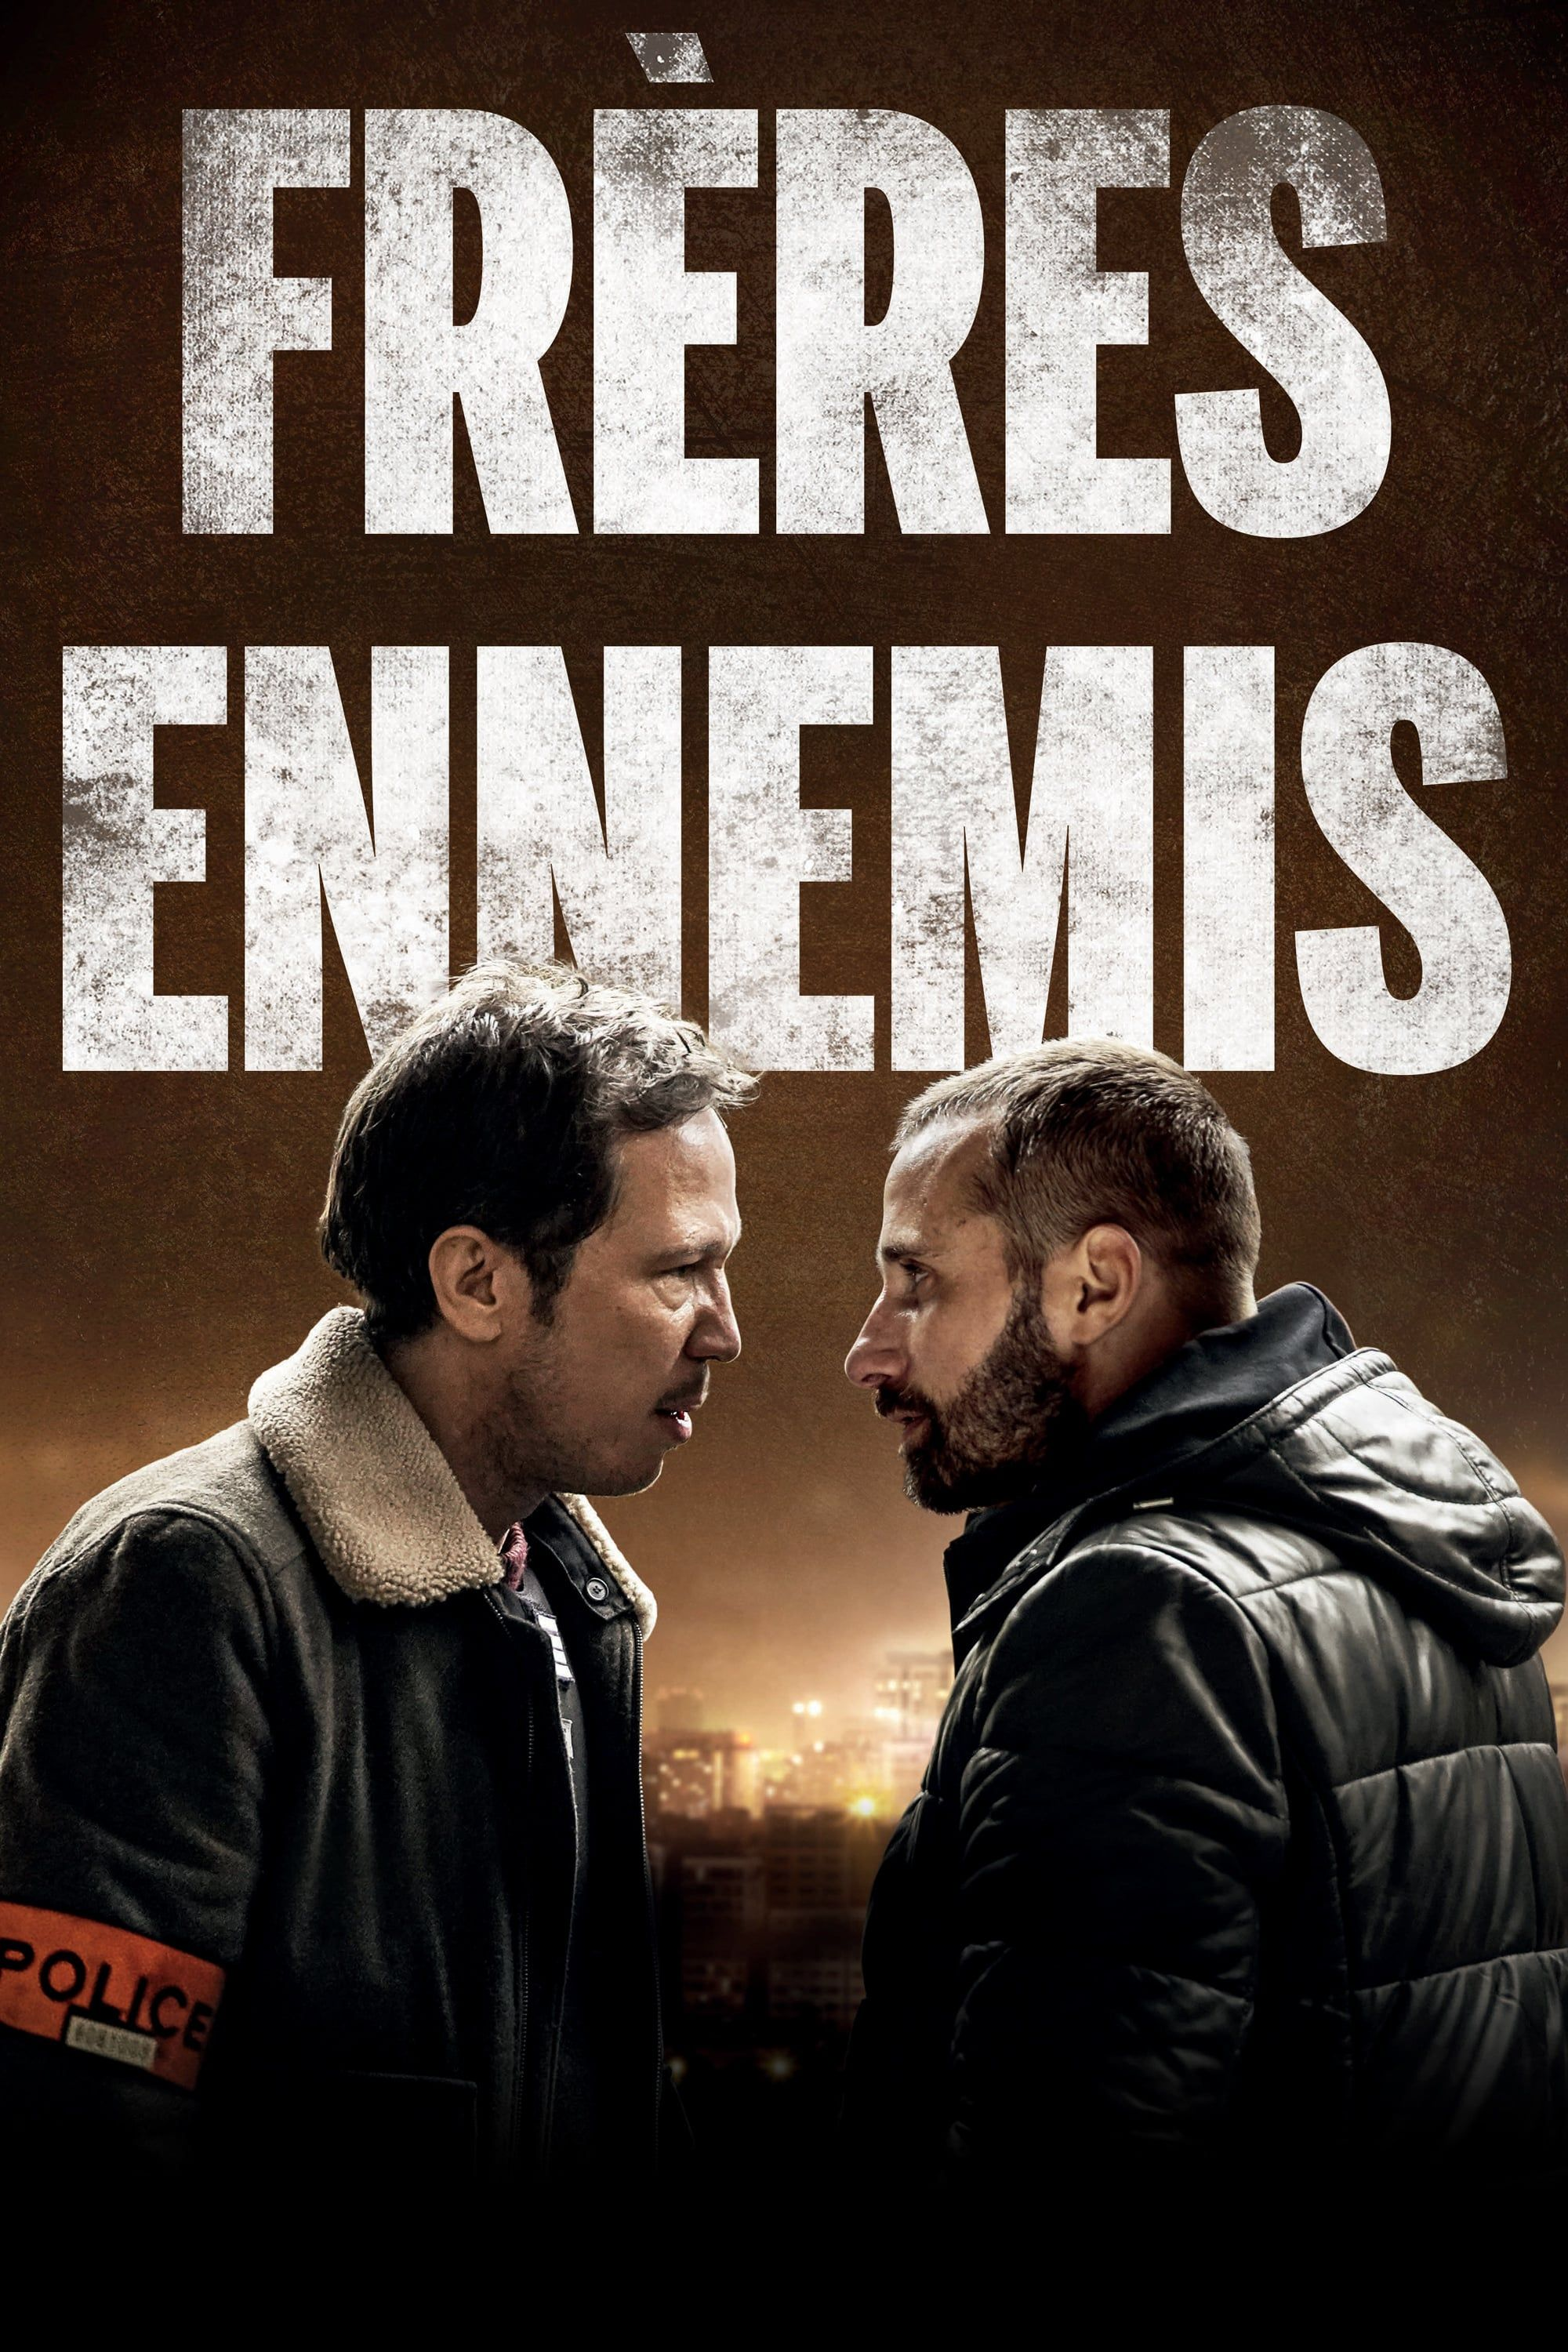 Pin On Close Enemies 2018 Téléchargement Complet